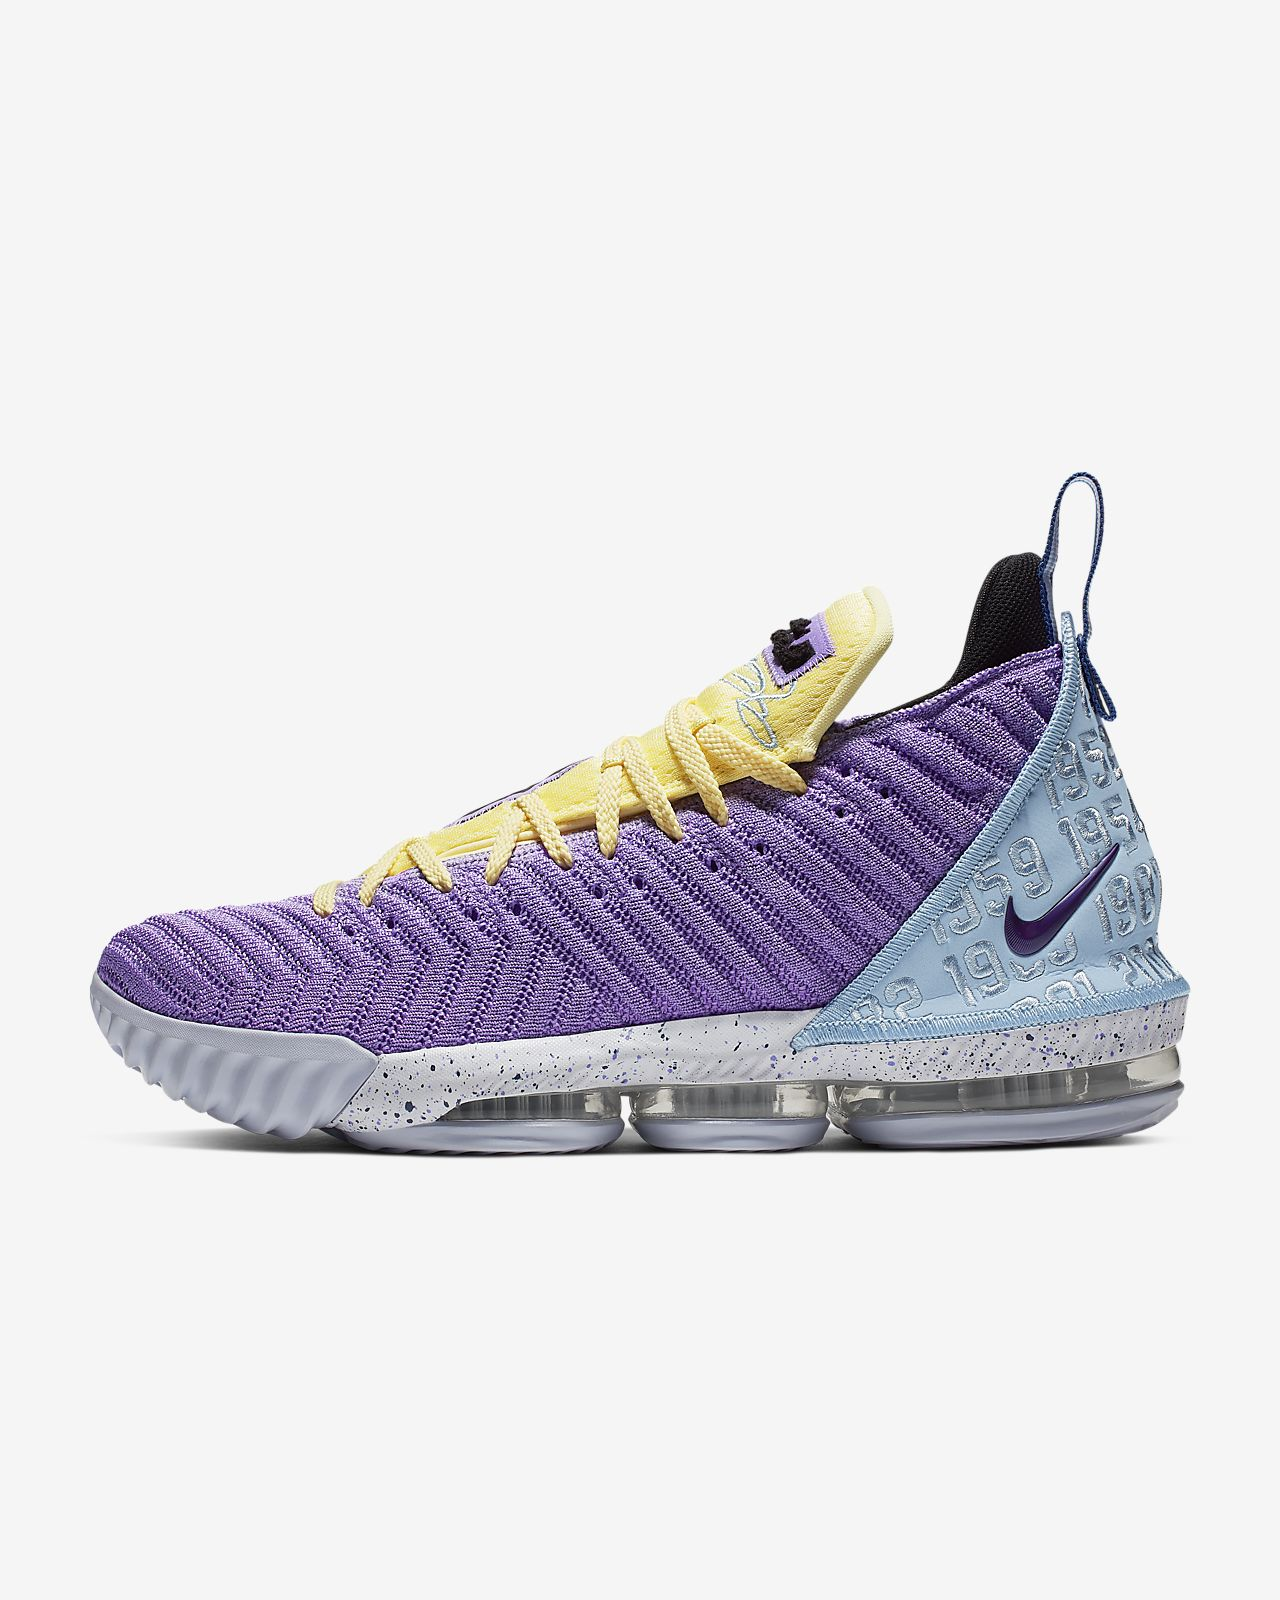 nike shoes purple